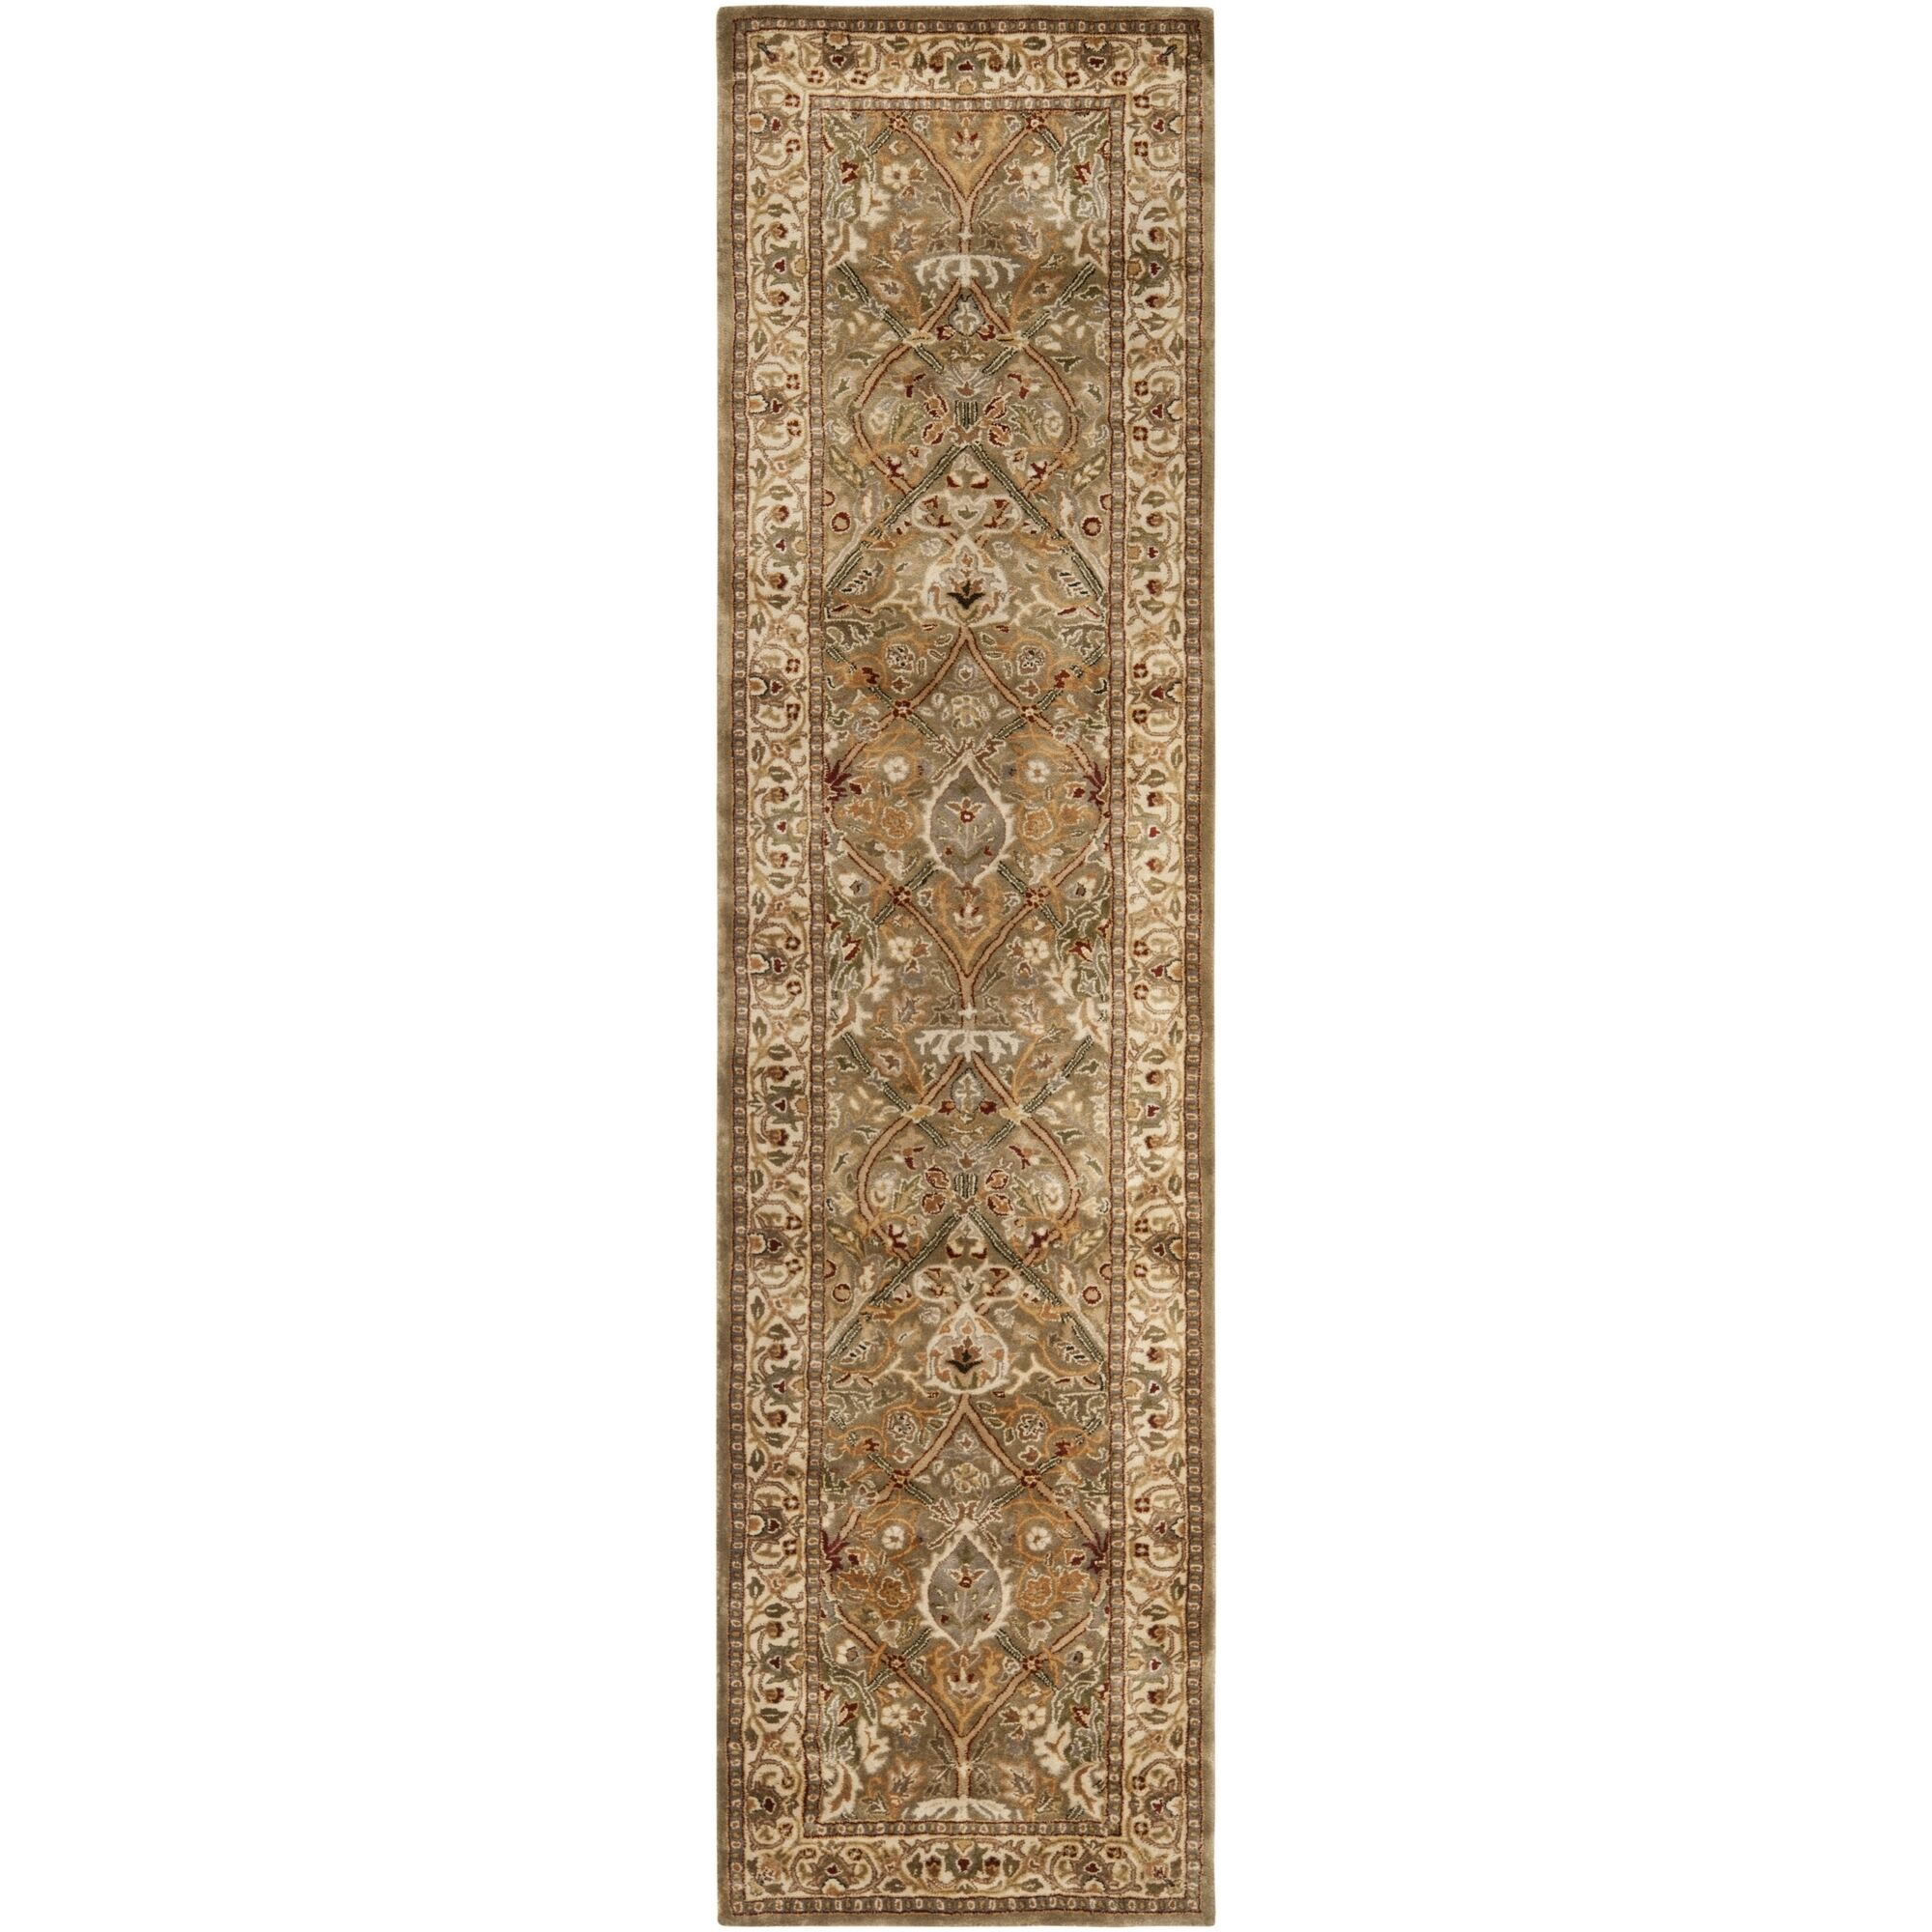 Empress Wool Beige Area Rug Rug Size: Rectangle 2'6